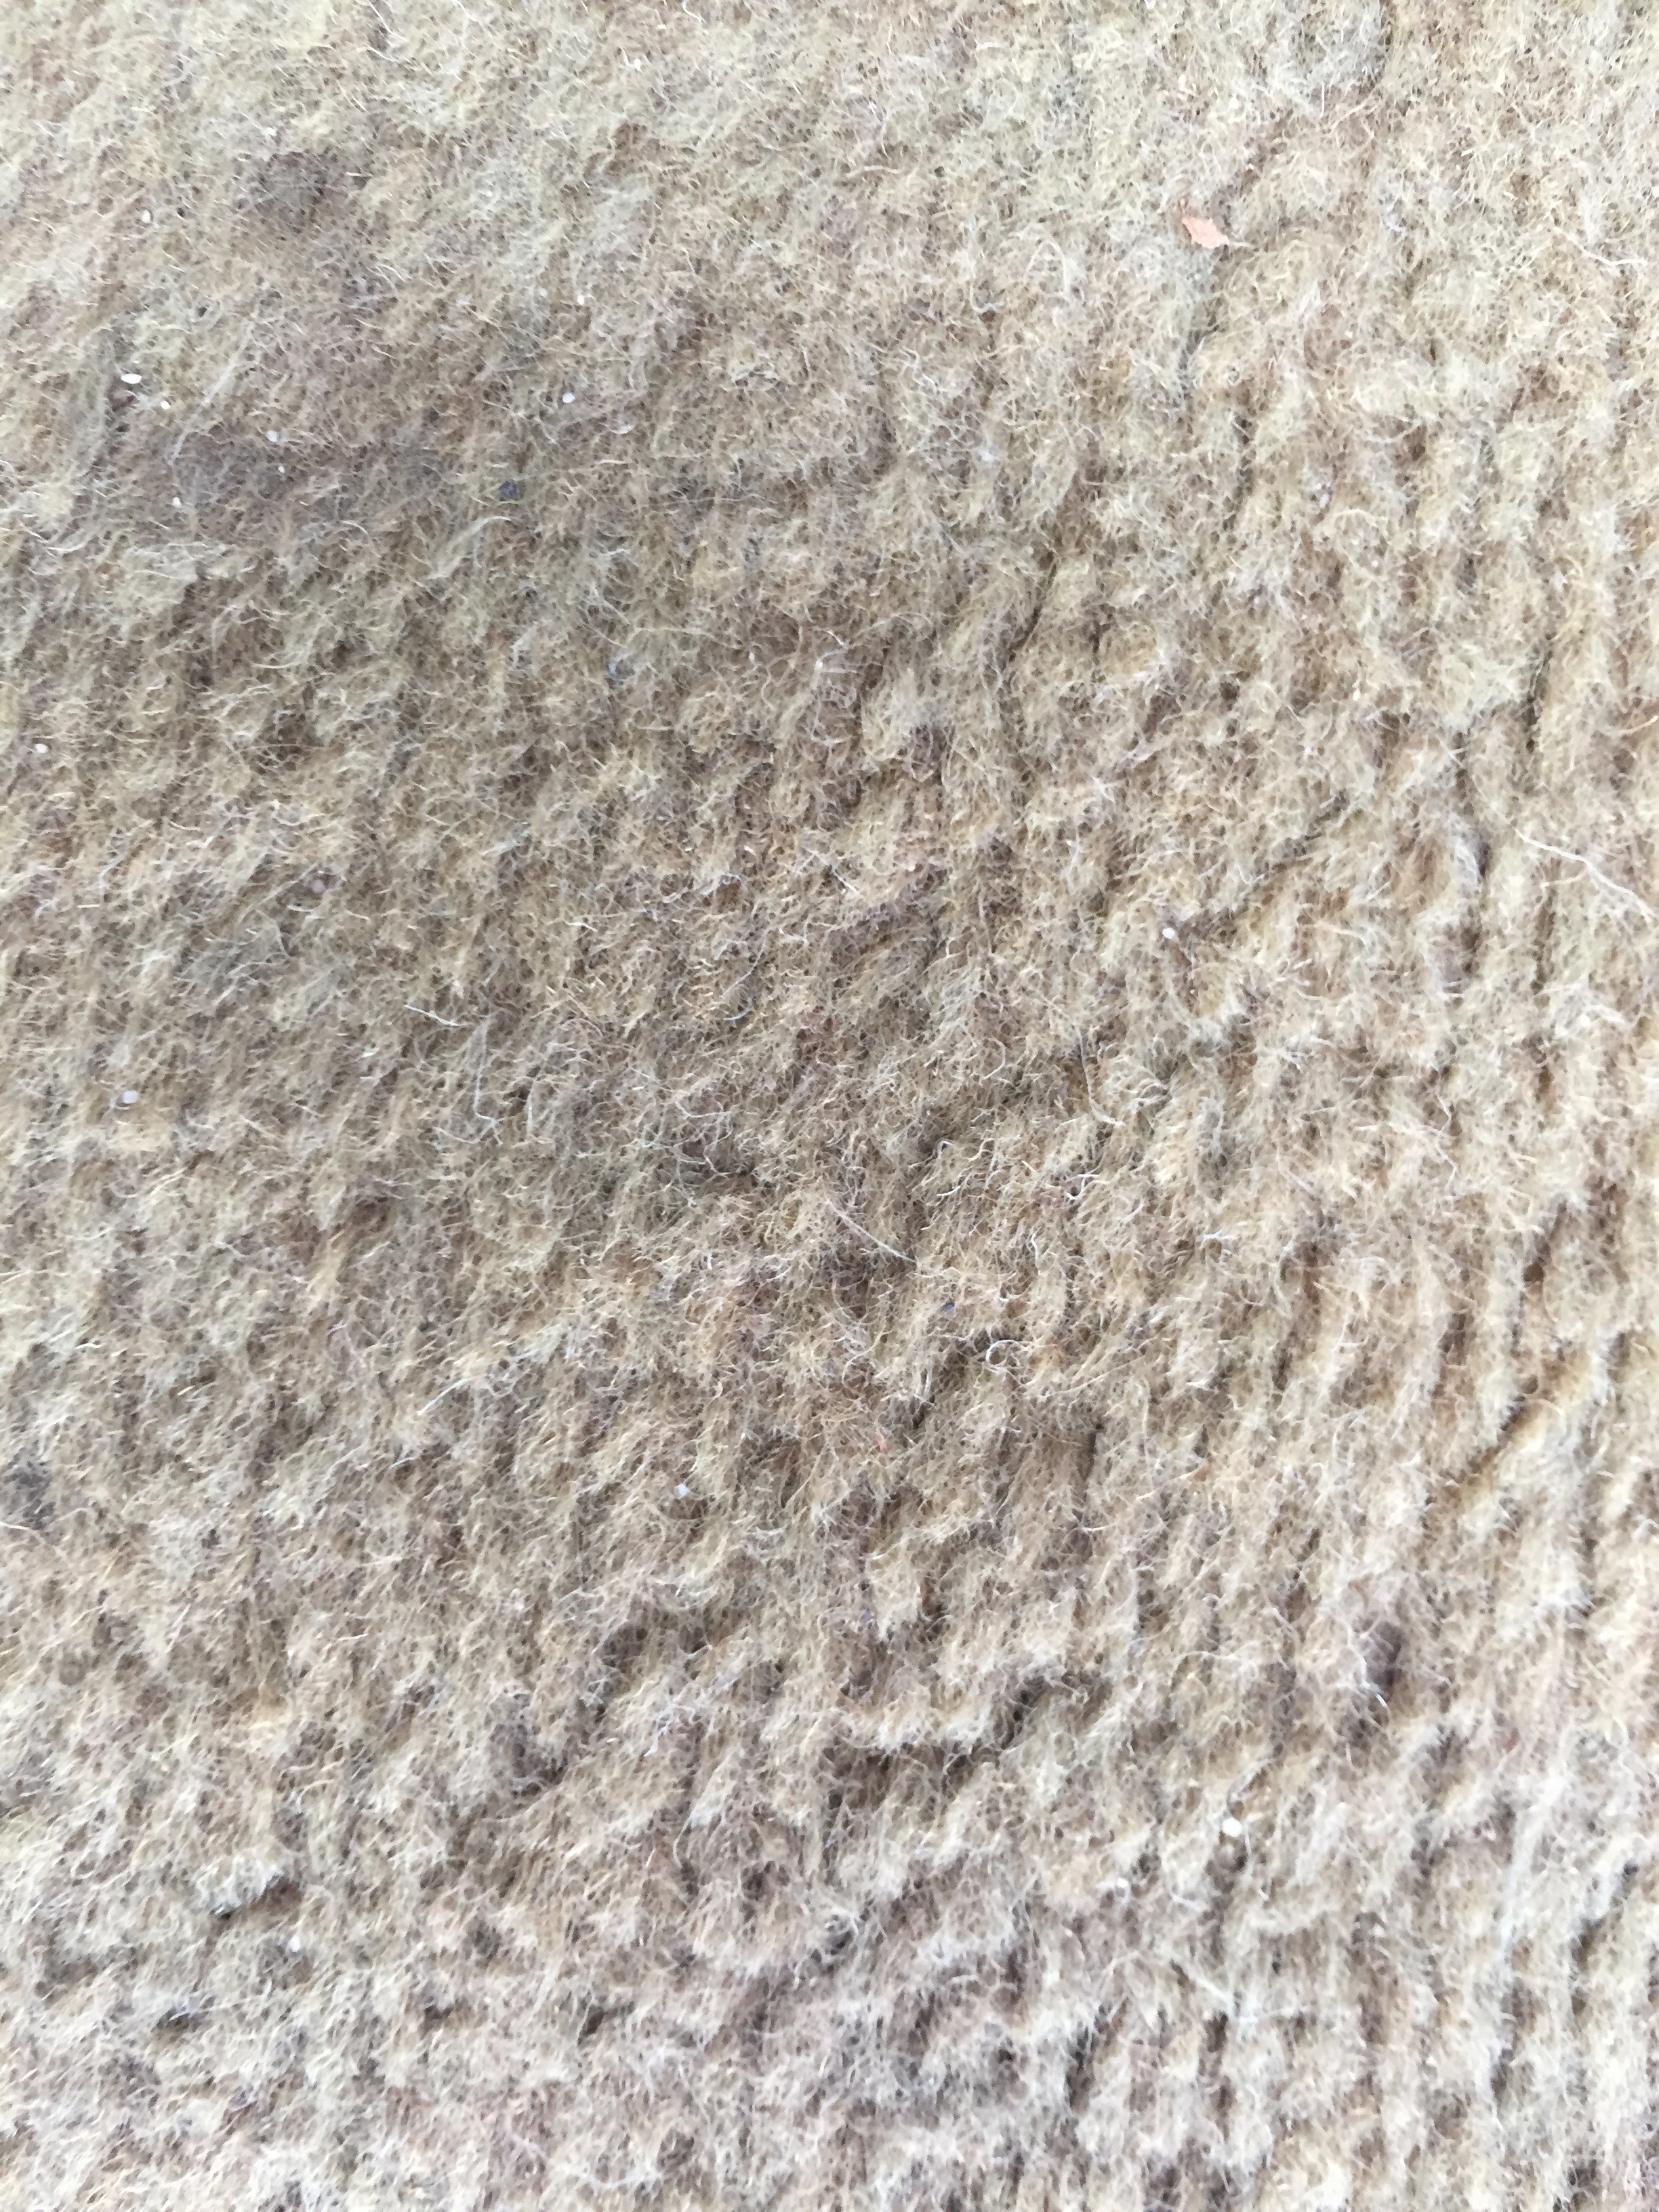 Light Colored Dirty And Worn Carpet Texture Free Textures